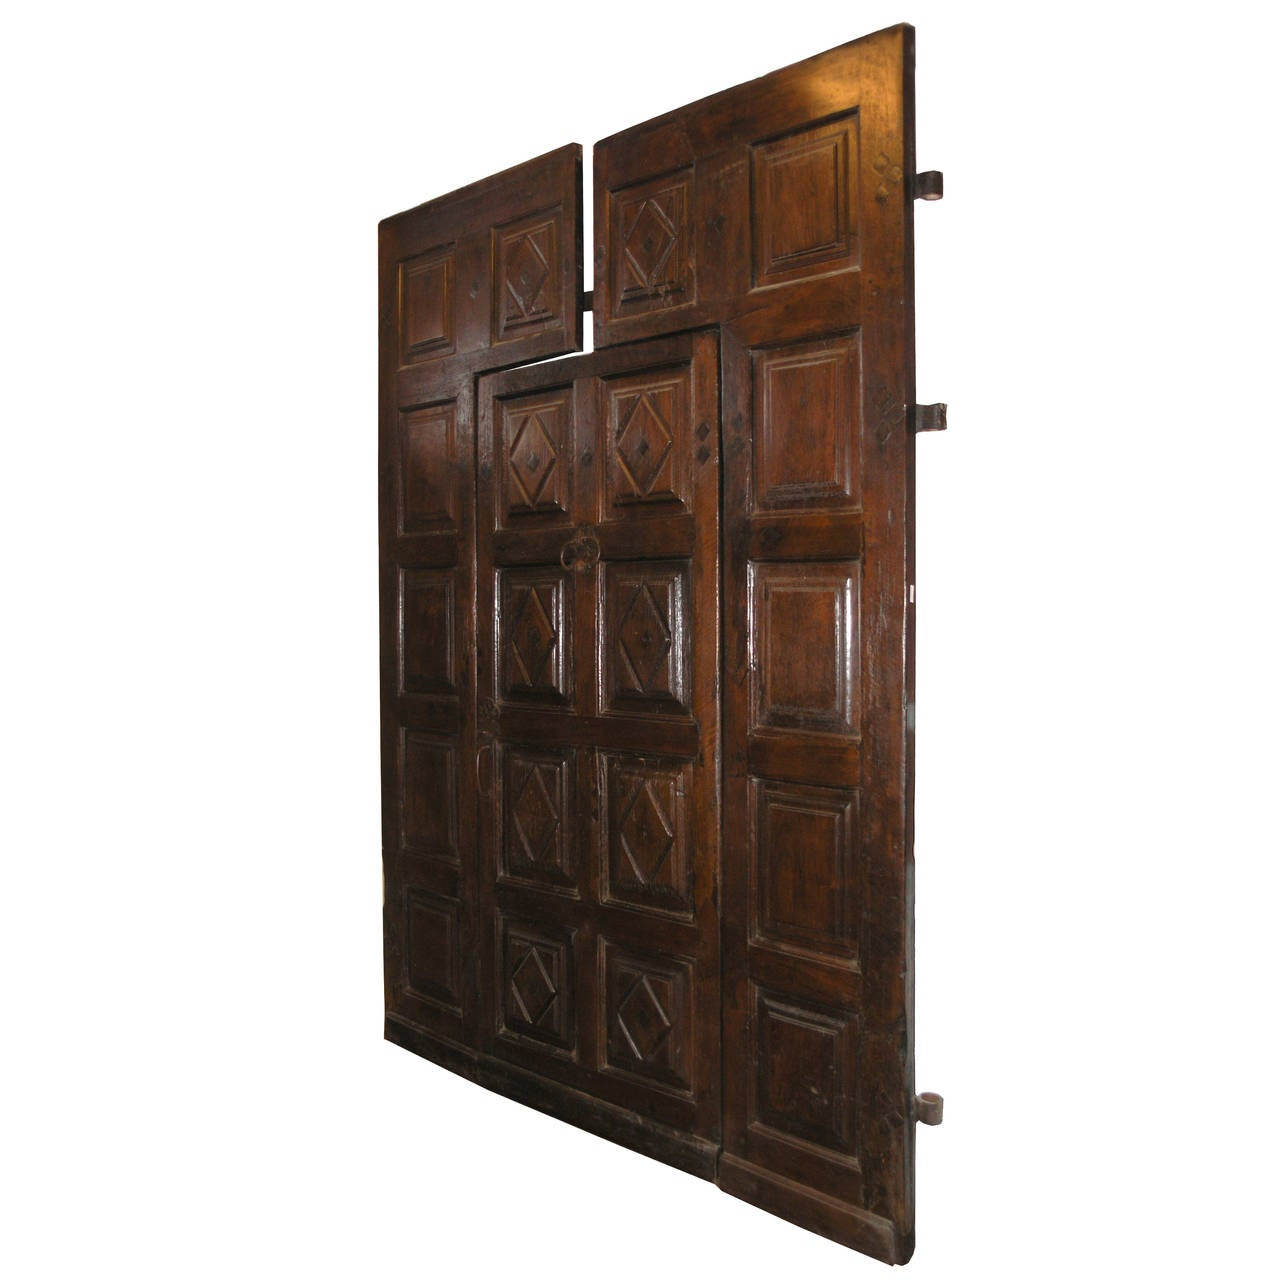 1280 #A0662B Antique Walnut Entry Door At 1stdibs save image Vintage Exterior Doors 41071280